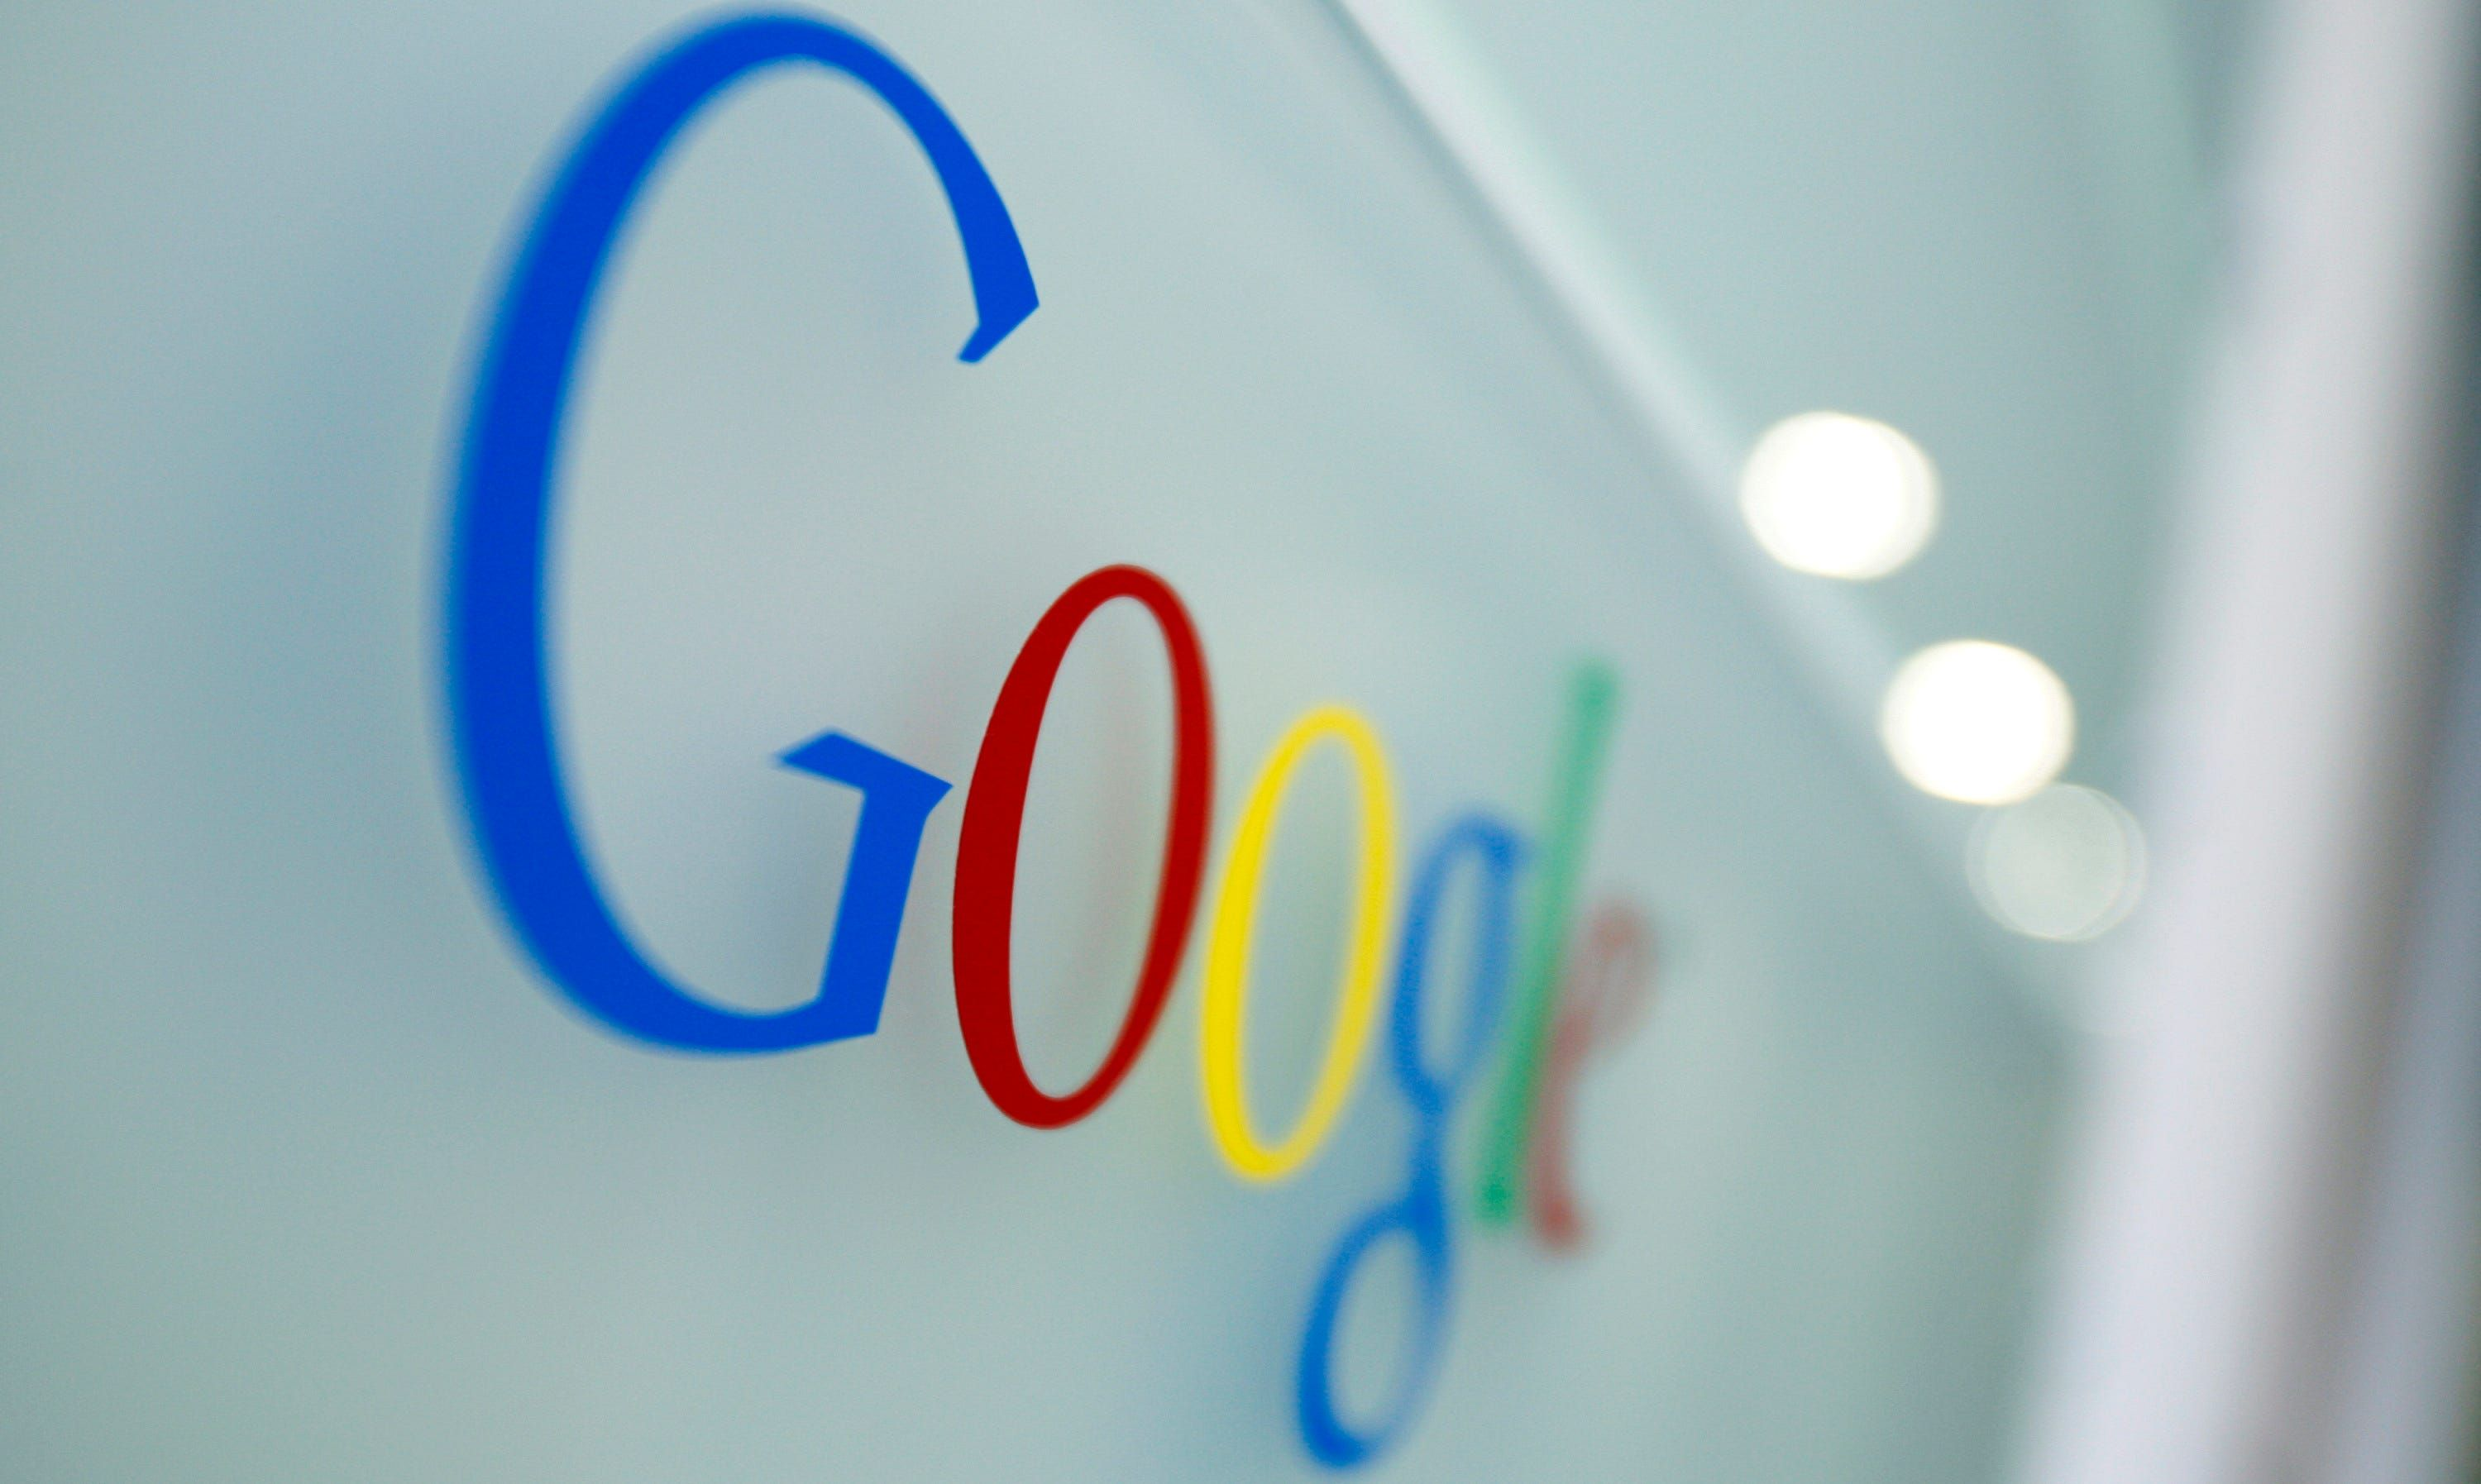 Beware of Google search scams. Here's how to spot a fake